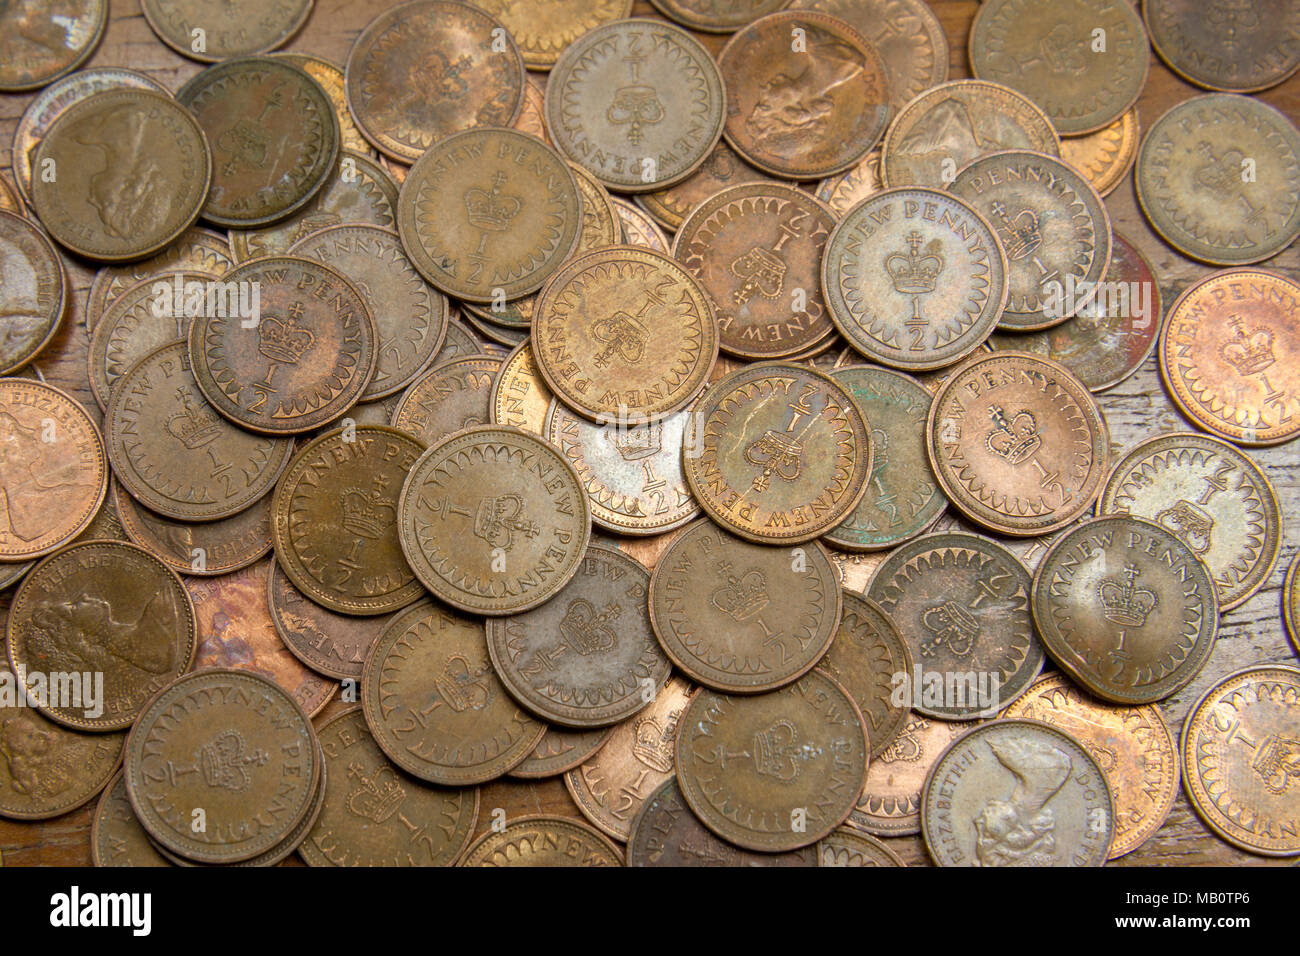 A large collection of half pennies. The coin was demonetised and withdrawn from circulation in December 1984. - Stock Image